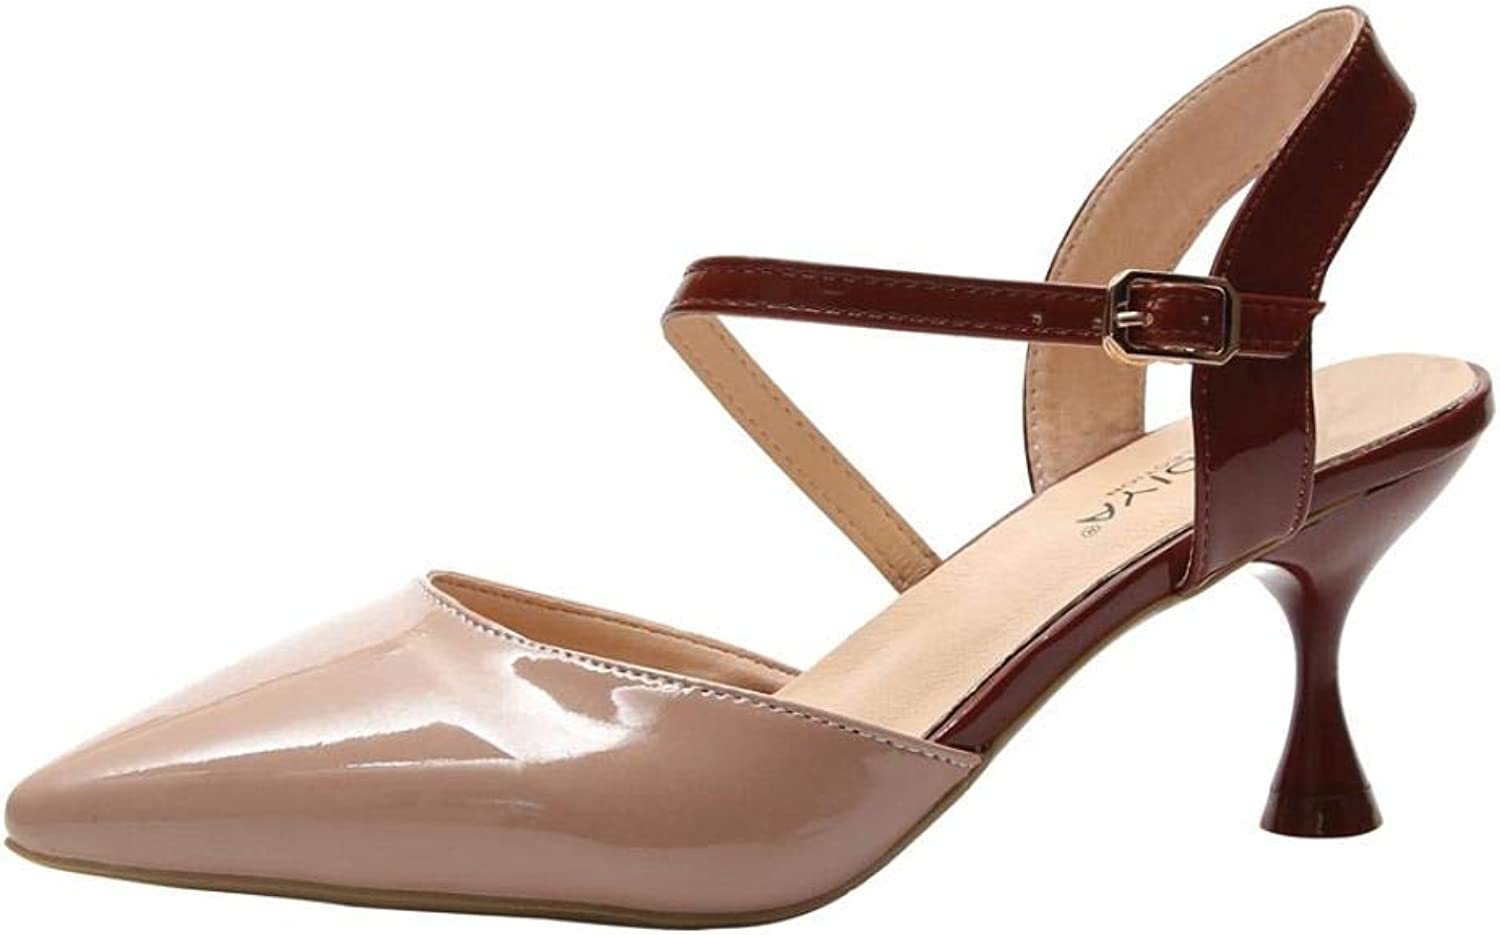 Lady shoes Fashion Women Pointed Toe Buckle Comfortable Leisure High Heel Sandals Leisure Elegant Soft Wild Tight Super Quality for Womens